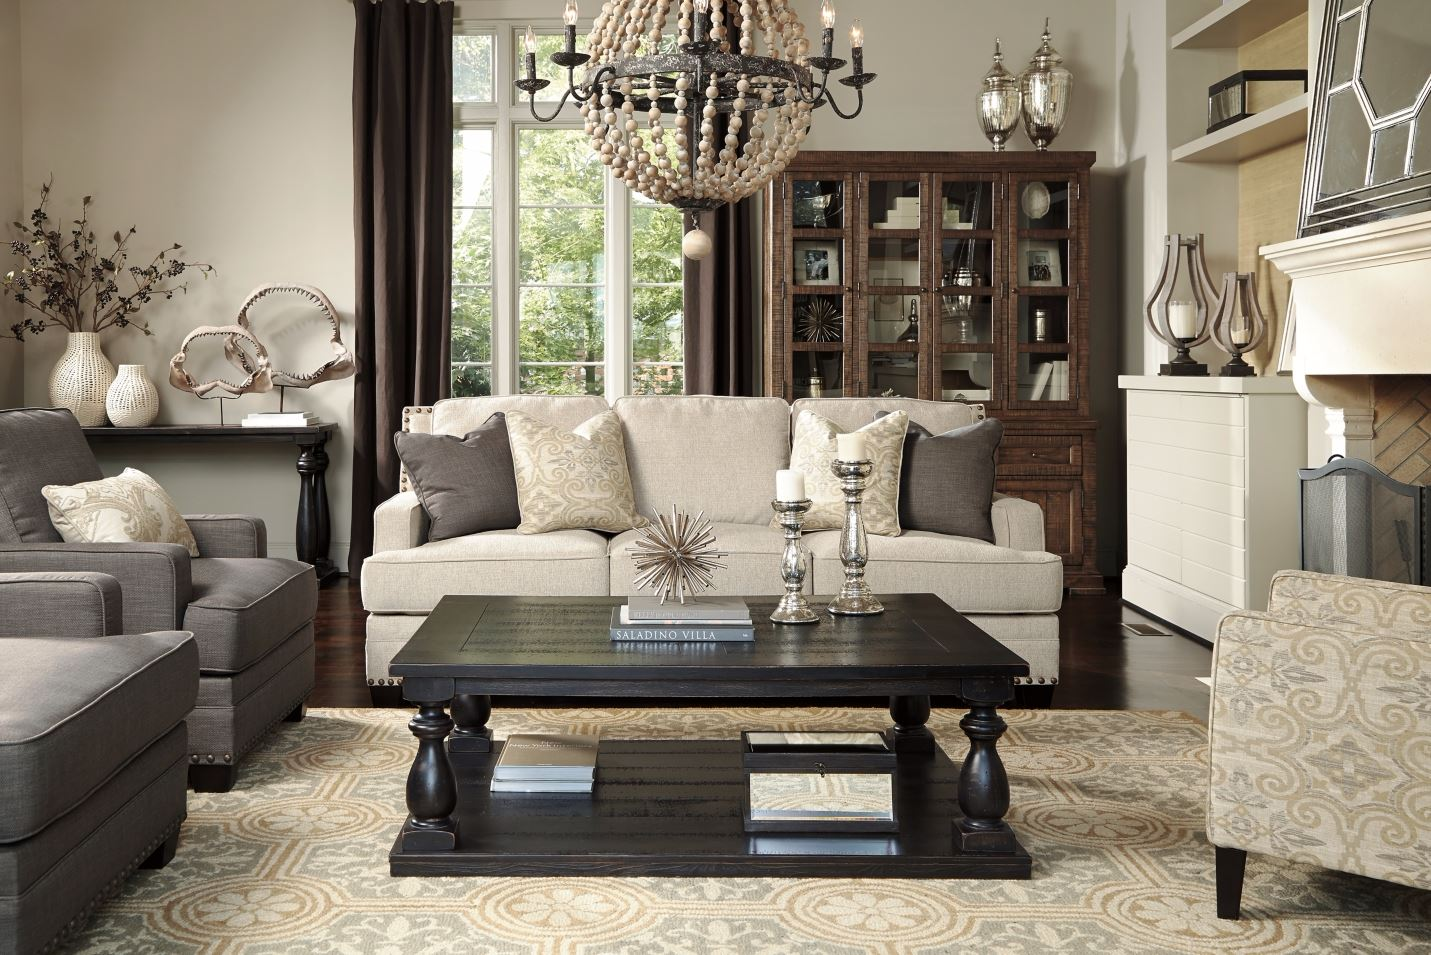 The New Urban Farmhouse Chic Ashley Furniture HomeStore - Ashley furniture living room table set